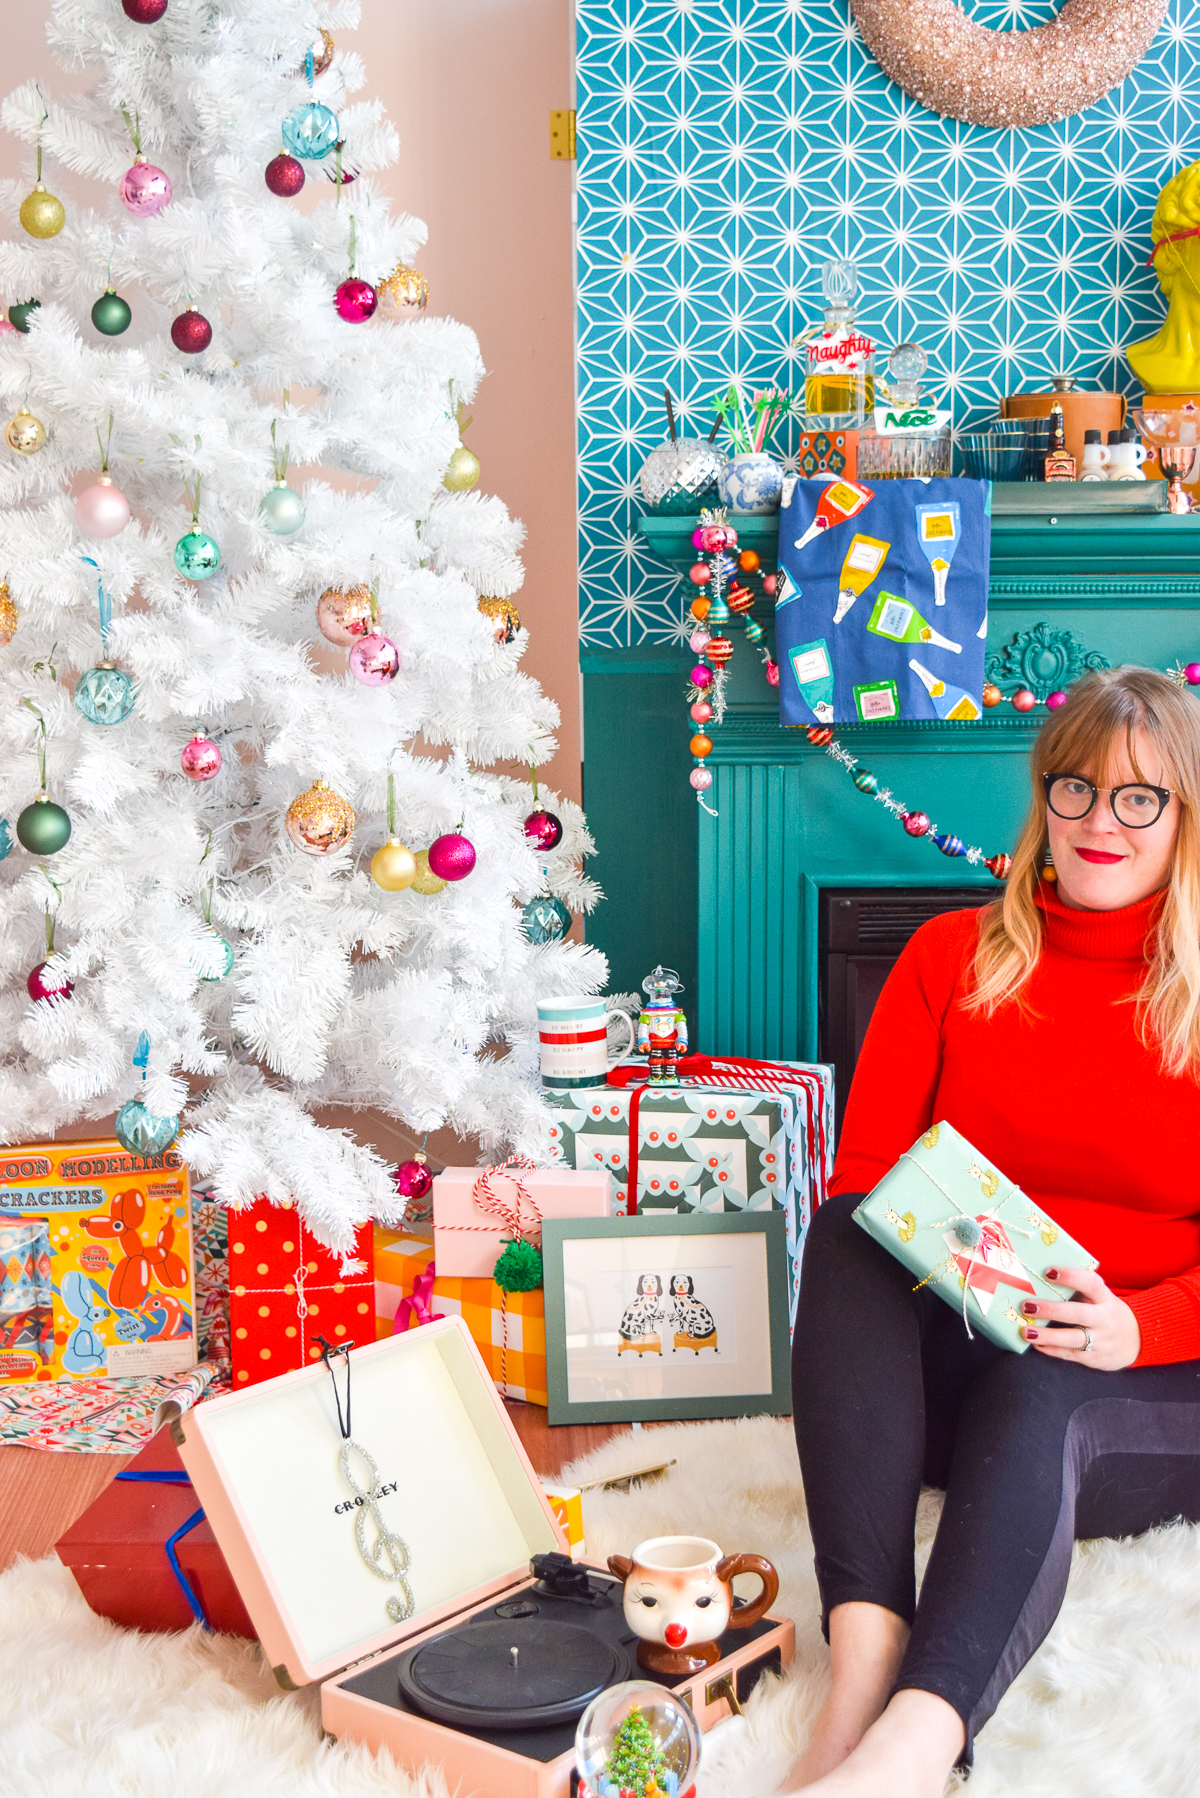 It's Christmas gift guide time! I've got everything you need (& won't see elsewhere) for the hostess with the mostess, the cool girl, & the cocktail lover! Come on down and see what I'd want